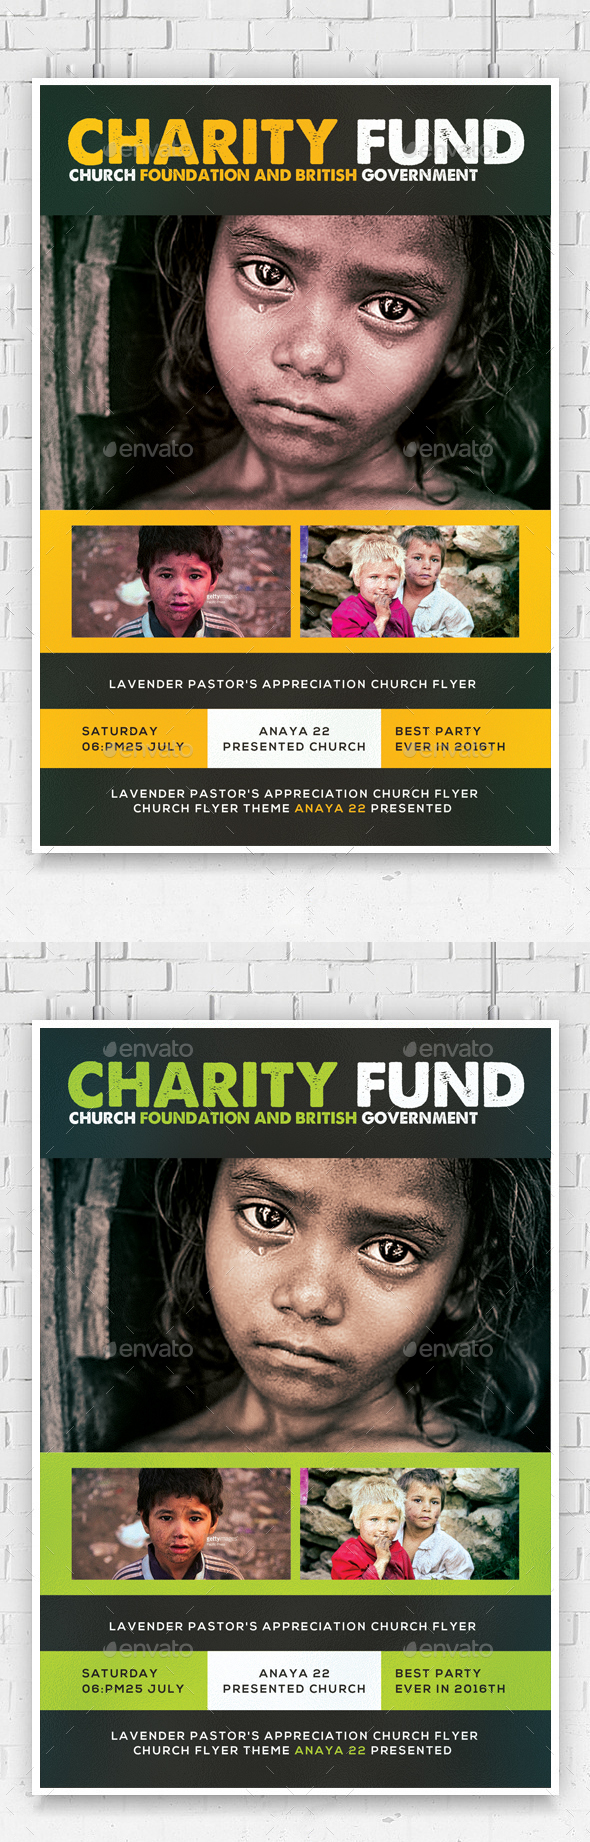 Charity Foundation Church Flyer Template - Church Flyers